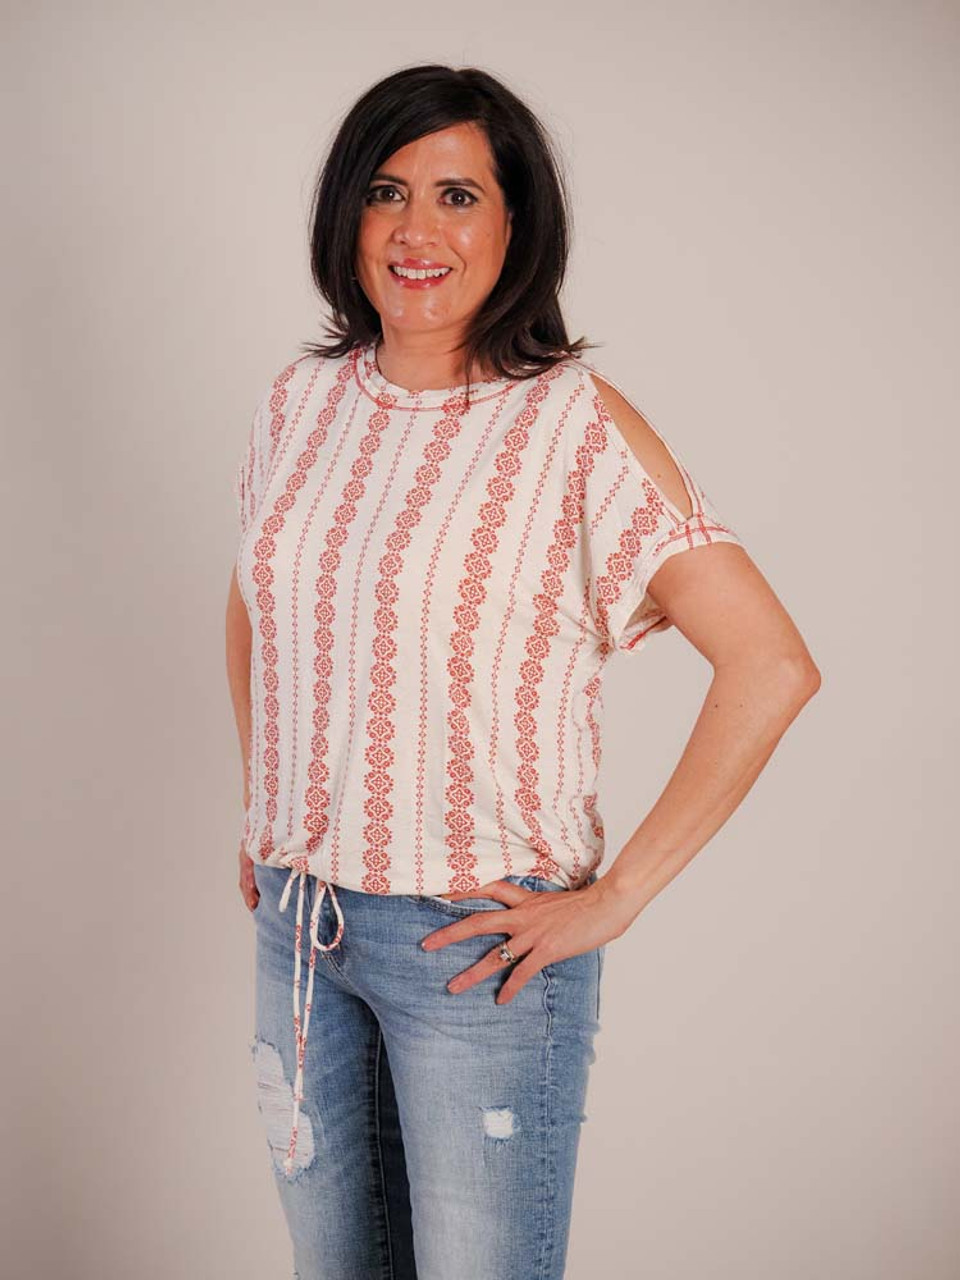 Loose fit lightweight heathered beige tshirt with red geometric and floral stripes. Unhemmed detail around neck and cold shoulders. Drawstring at bottom hem with matching cord